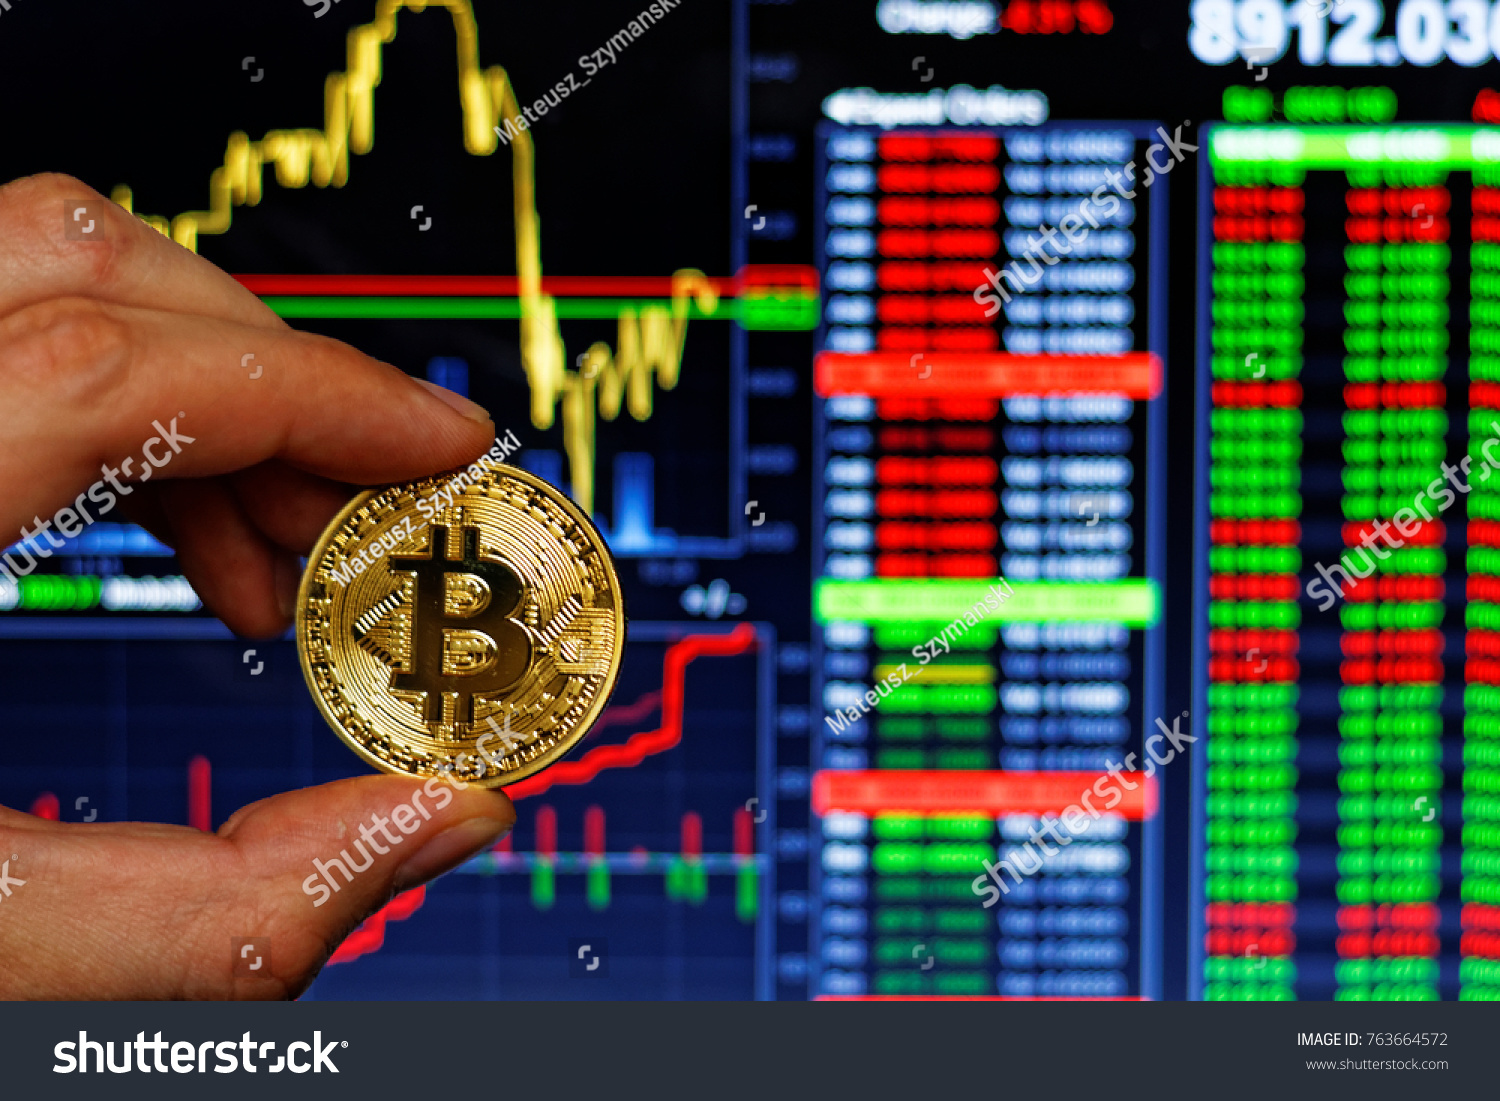 Mans hand holding gold bitcoin on stock photo 763664572 shutterstock mans hand holding gold bitcoin on stock market chart bitcoin symbol of investment in cryptocurrency biocorpaavc Images